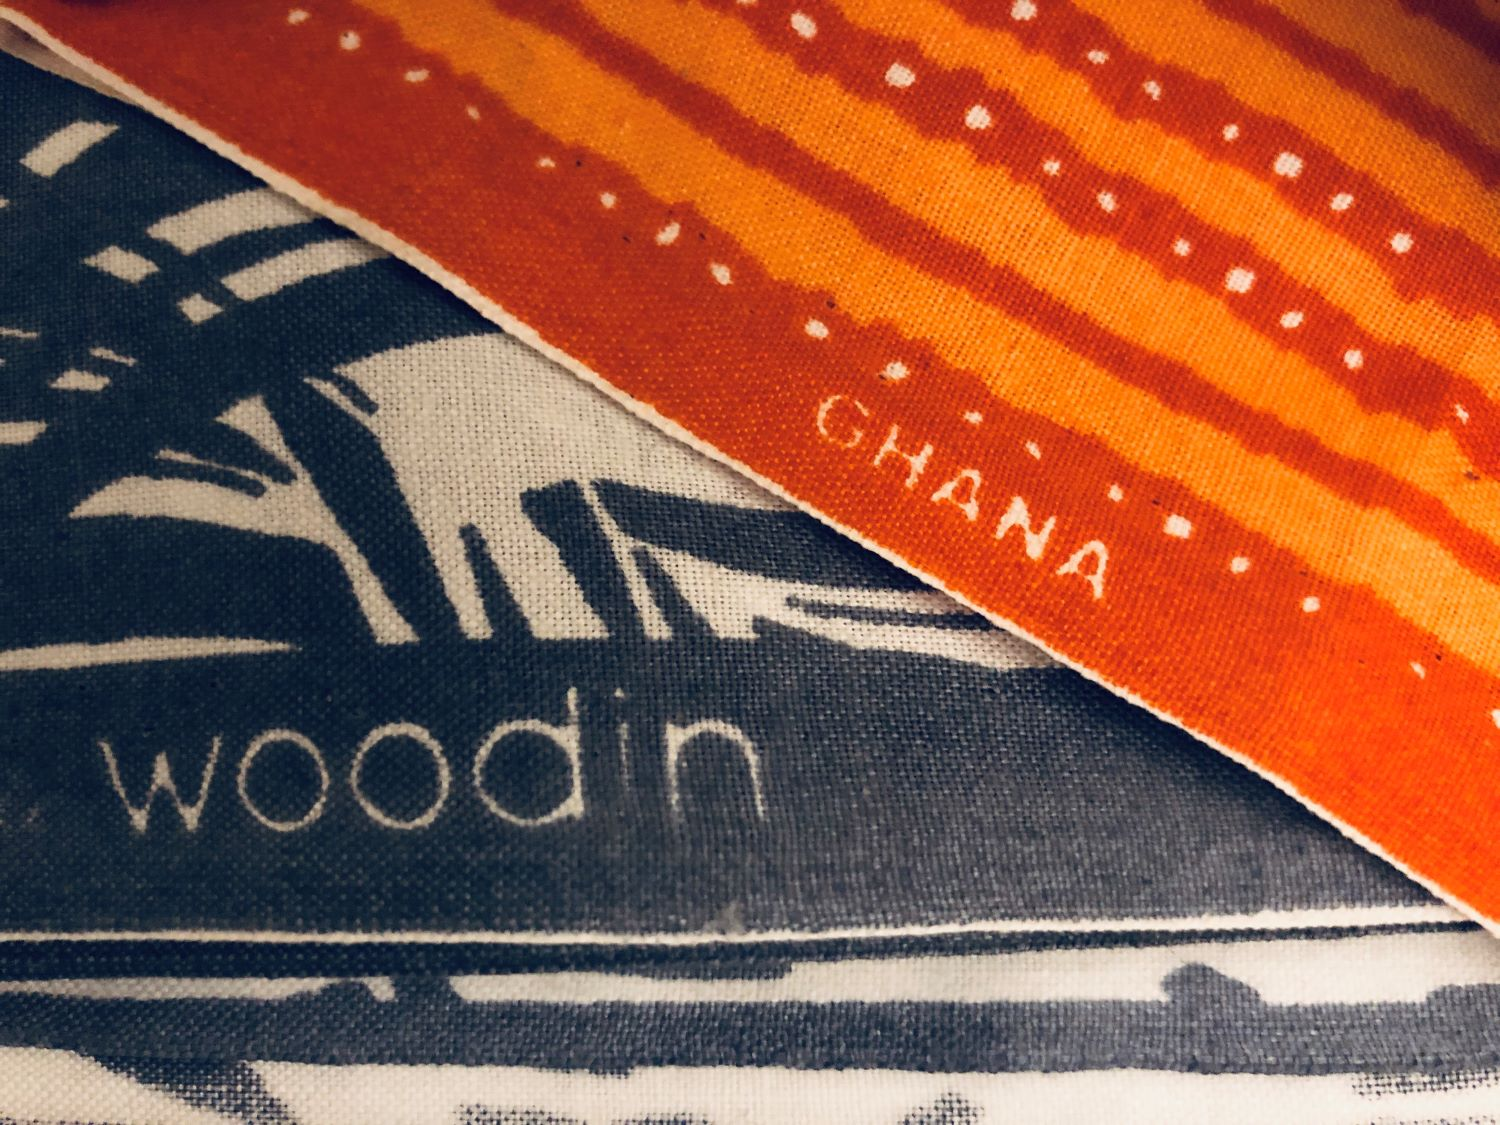 woodin-label2.jpg